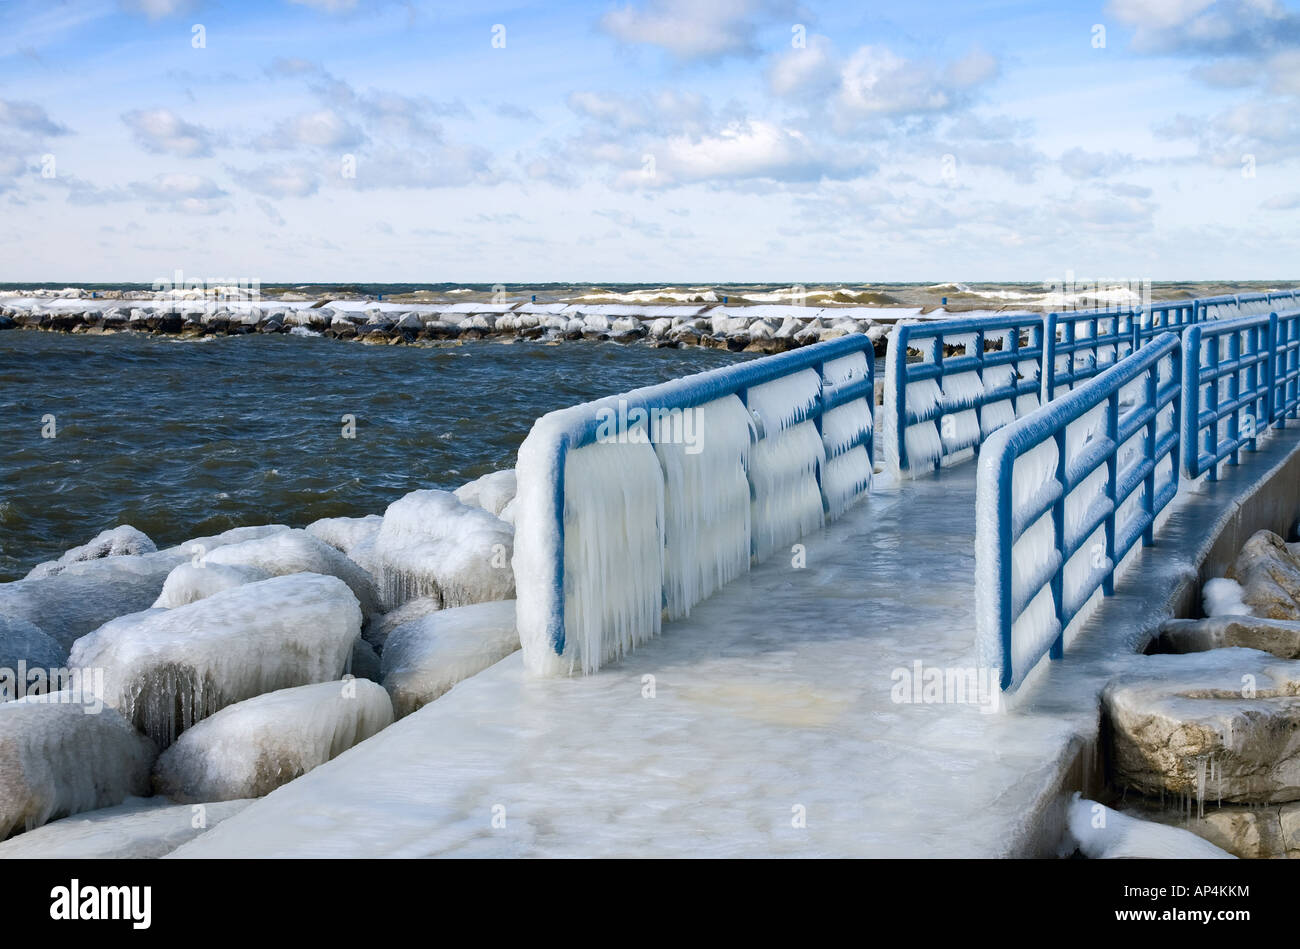 Lake Michigan cold winter spray creates ice on the pier and walkway at Holland Harbor - Stock Image